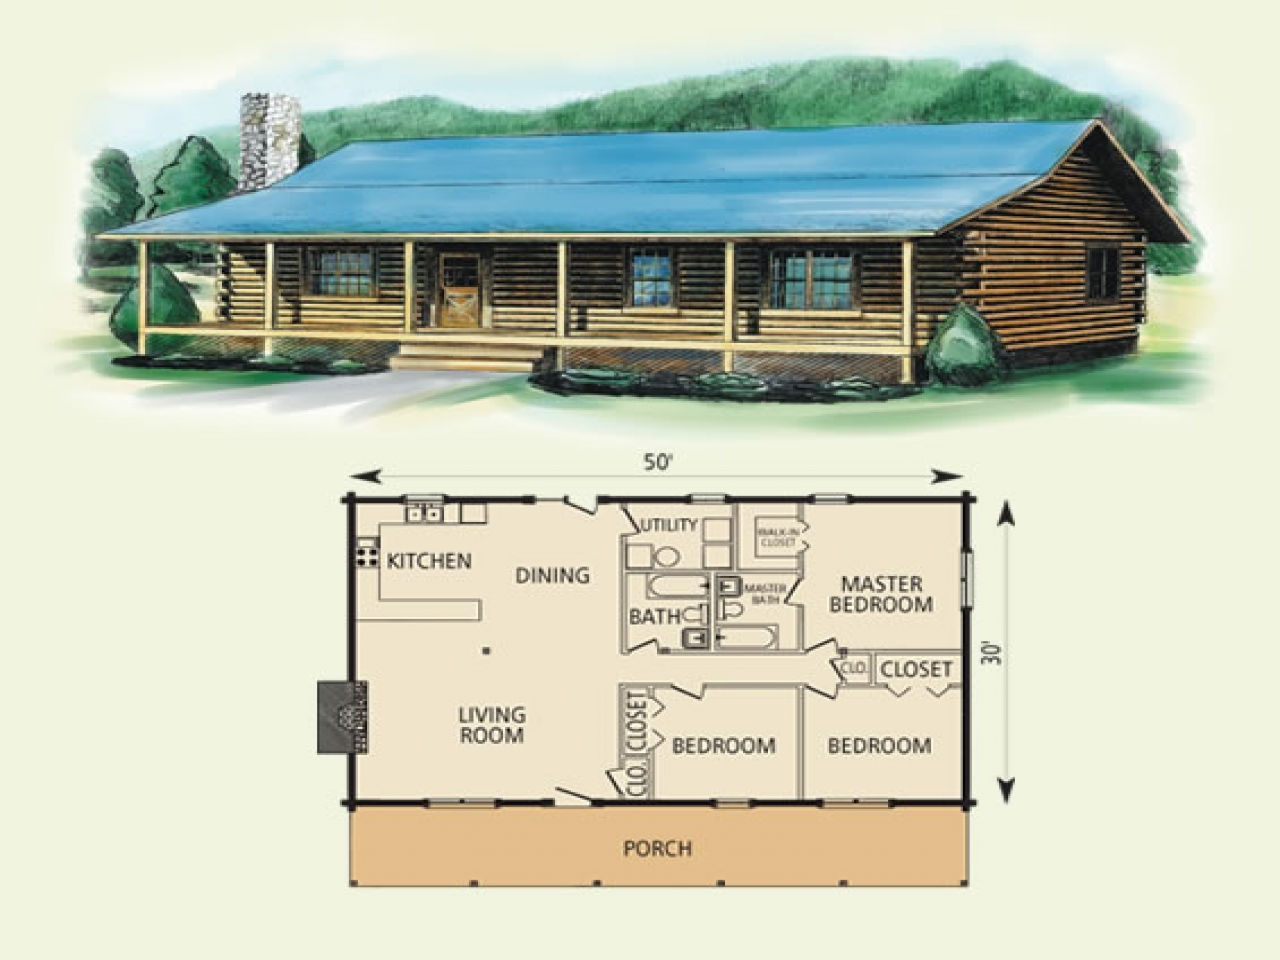 Building a simple log cabin simple log cabin home floor for Simple log cabin plans free